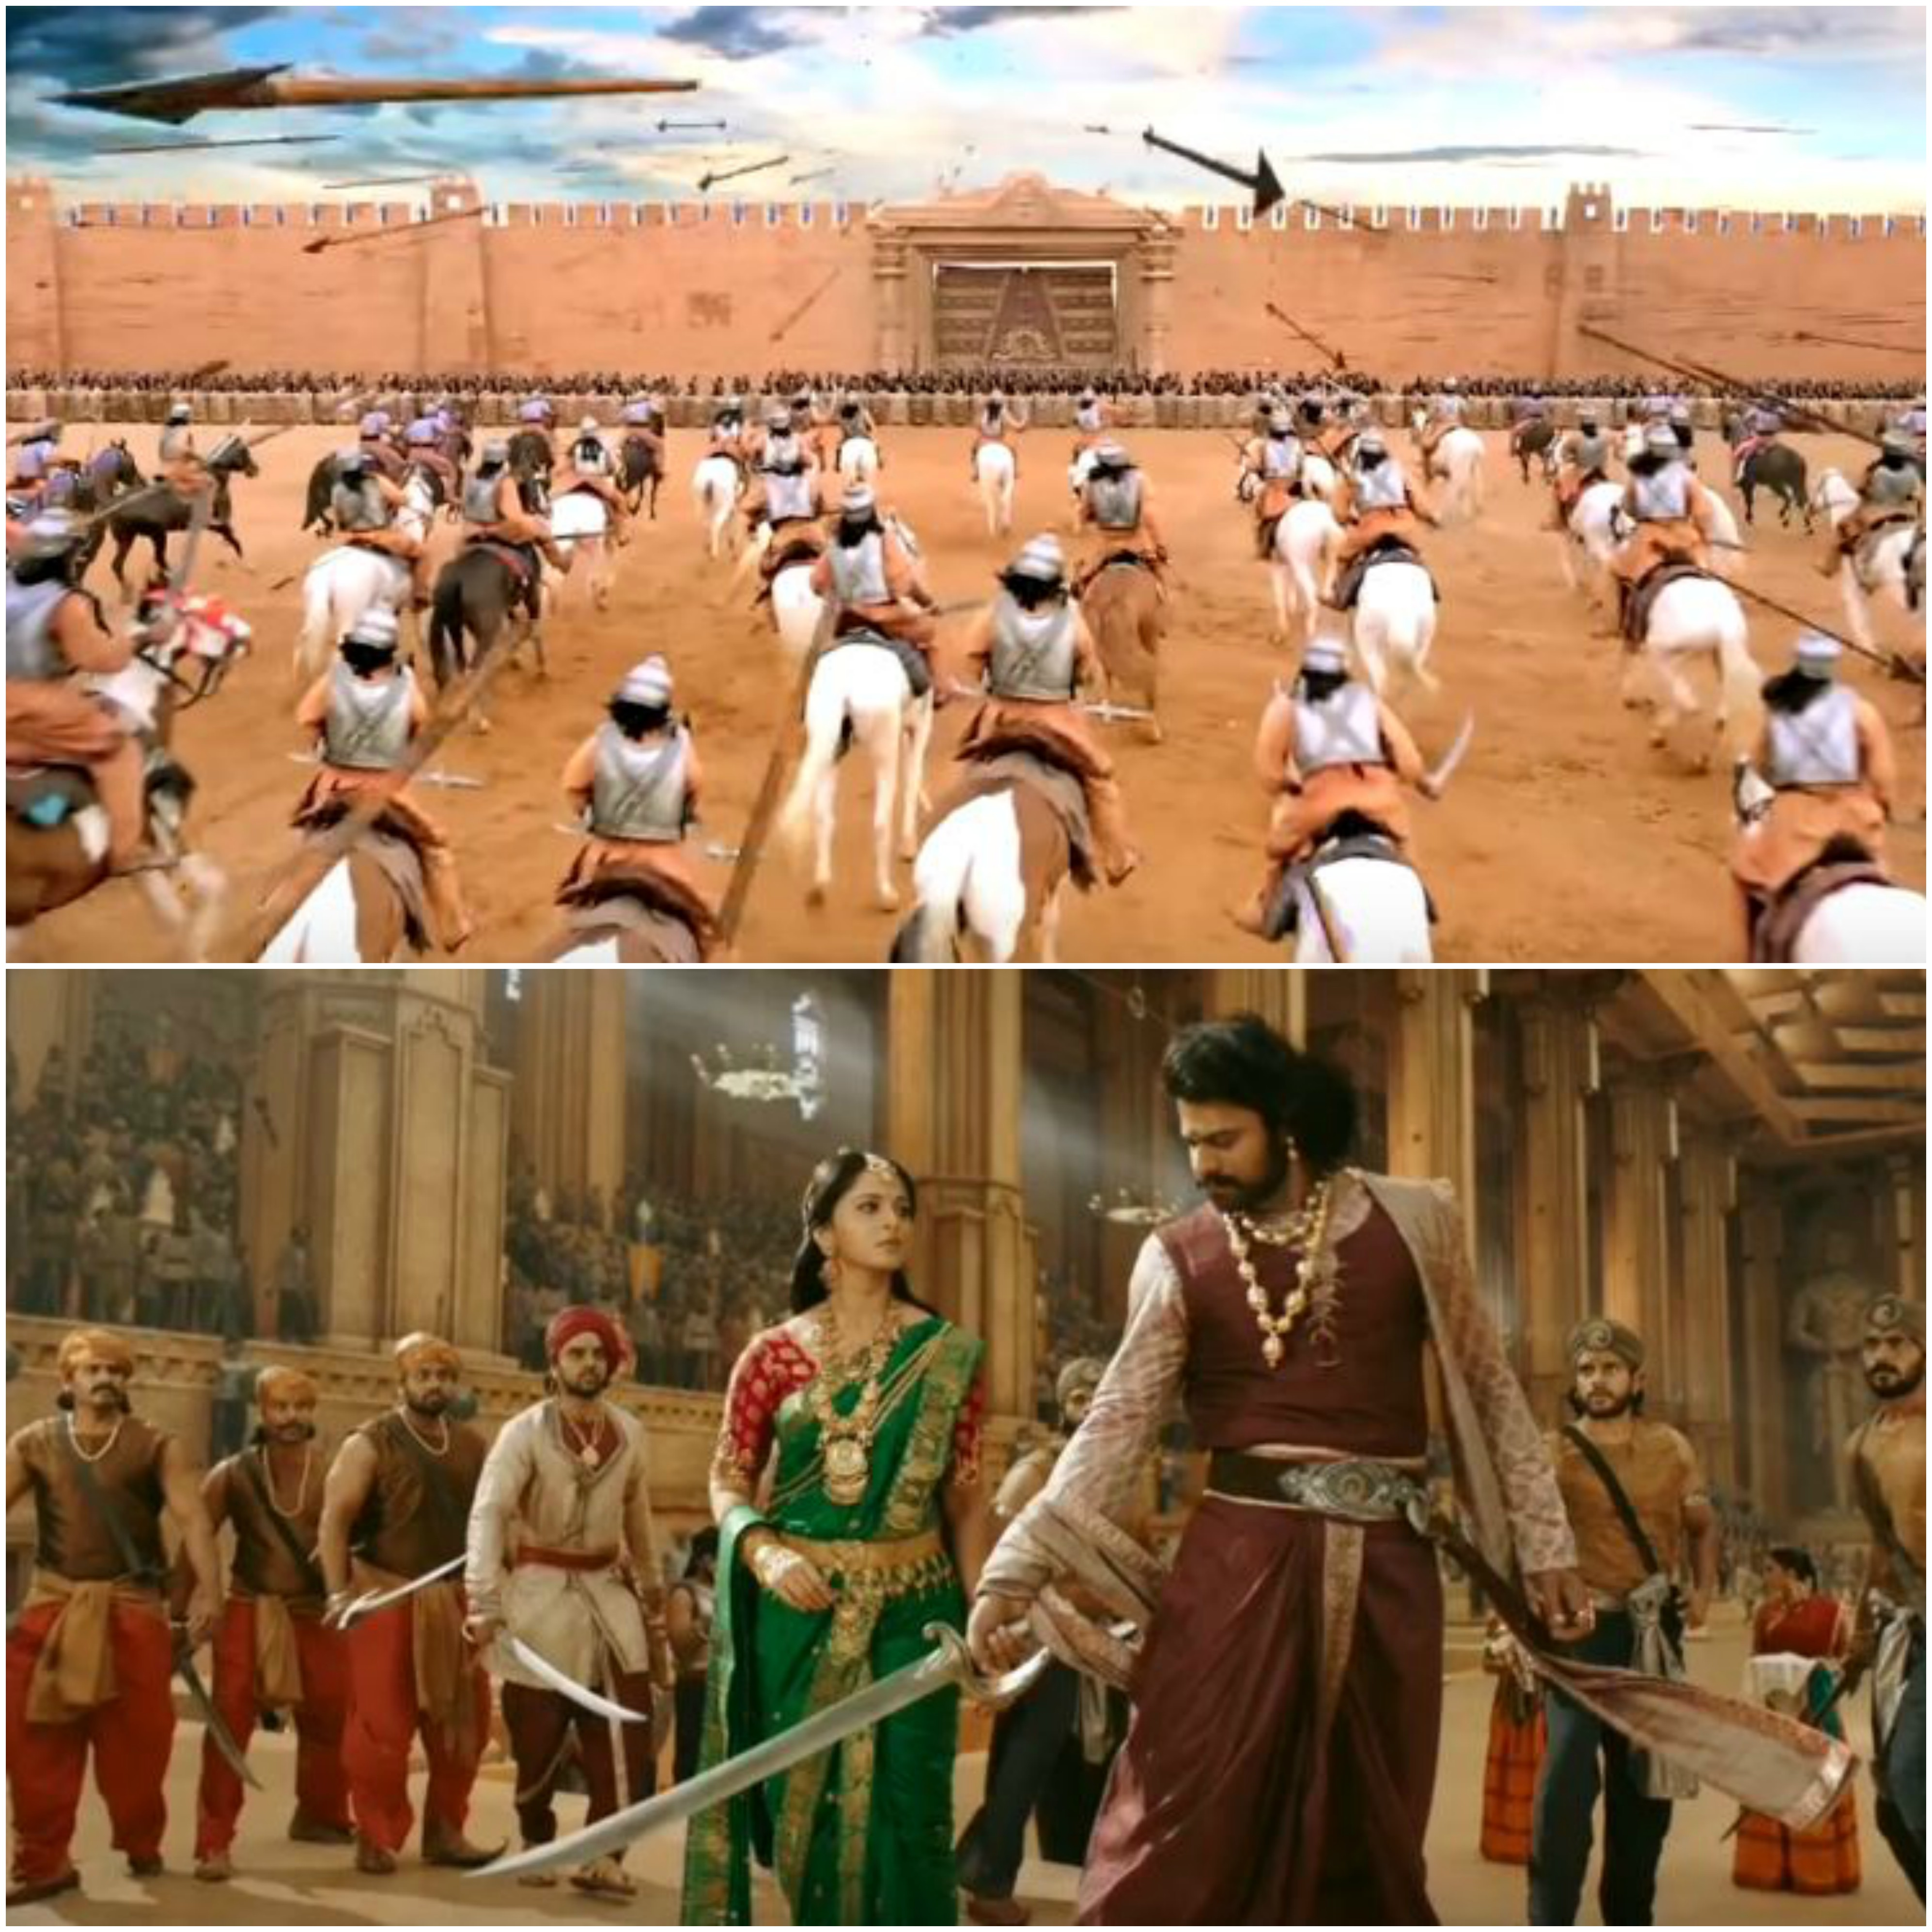 Baahubali 2 unparalleled Thunderous applause awe for Rajamoulis film unlikely to subside soon